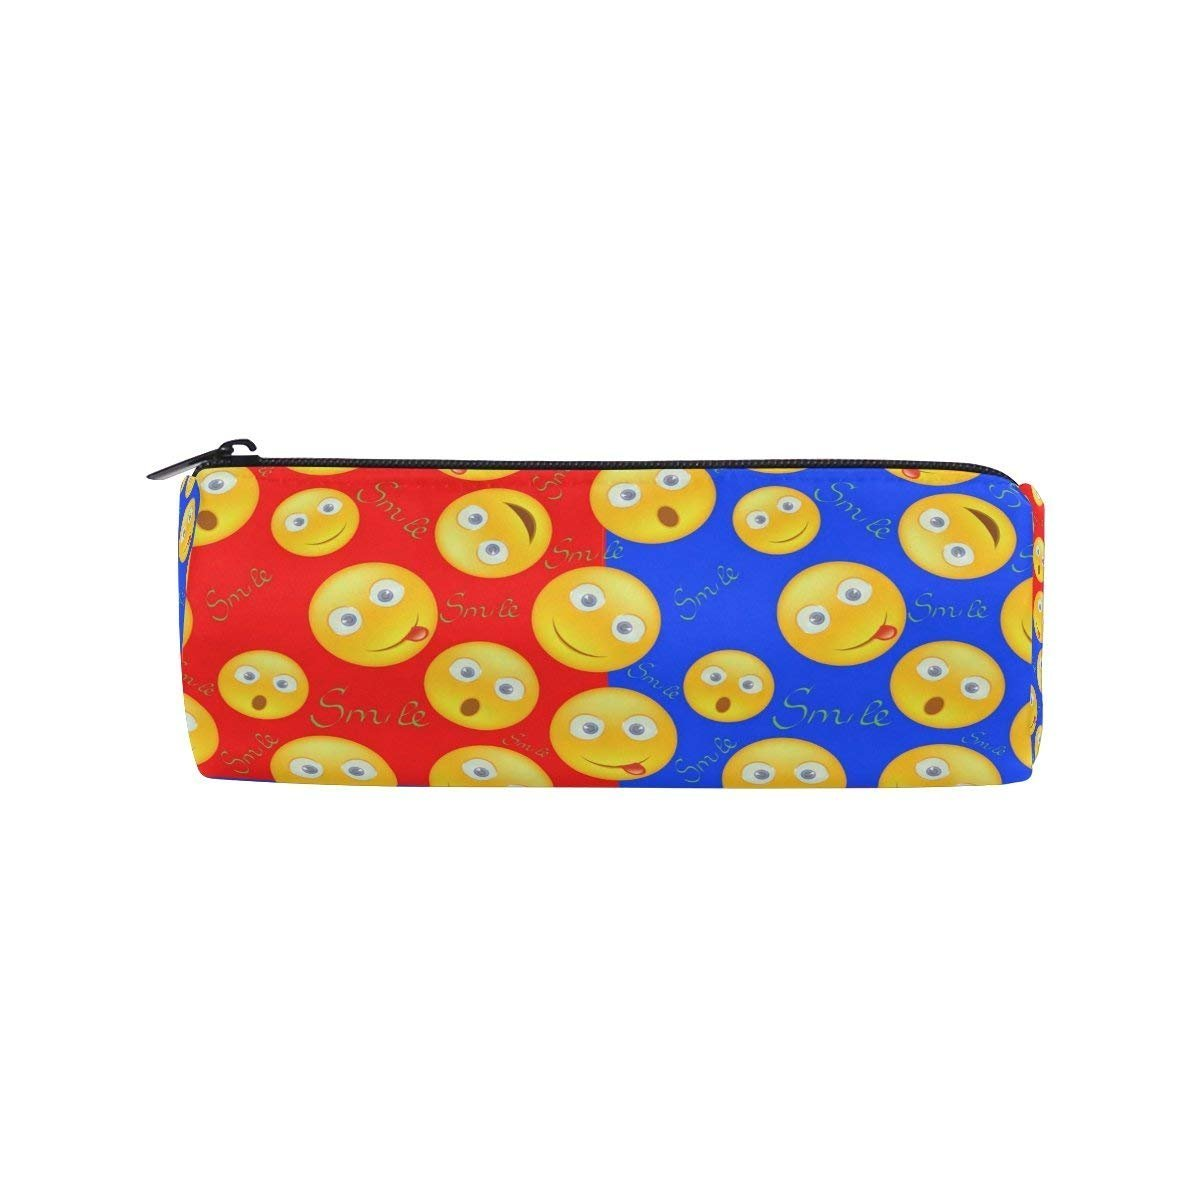 Amazon com pencil case cheerful smile emoji emotions canvas big school stationery holder cosmetic bag with zip art colored pen pouch for kids girls boy 1